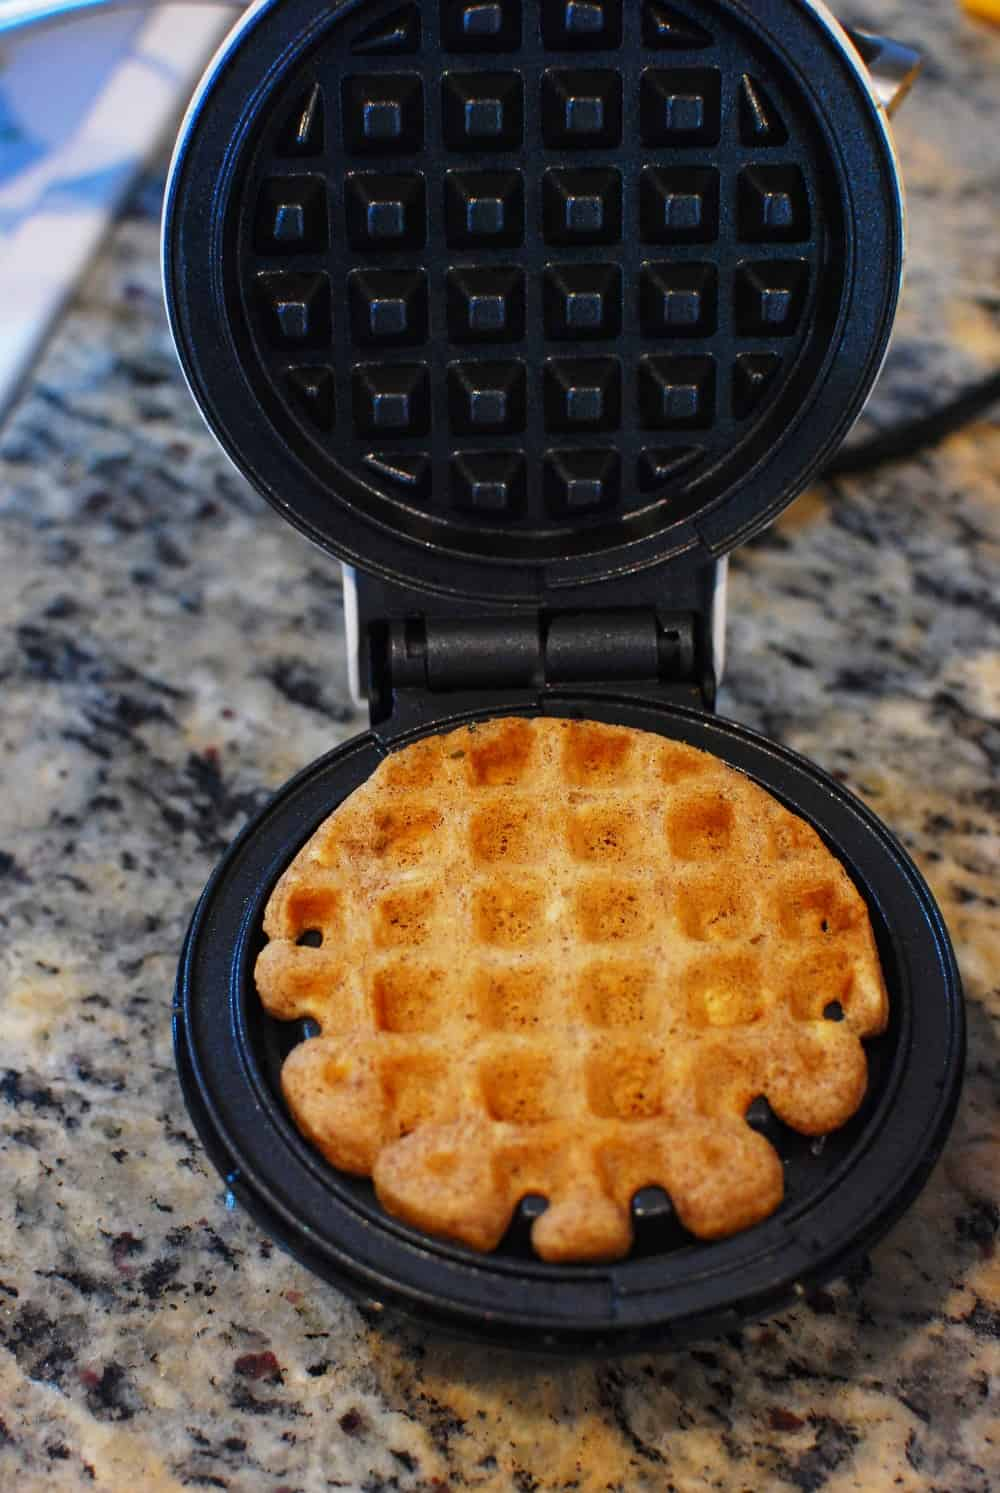 a waffle being cooked in a mini waffle maker